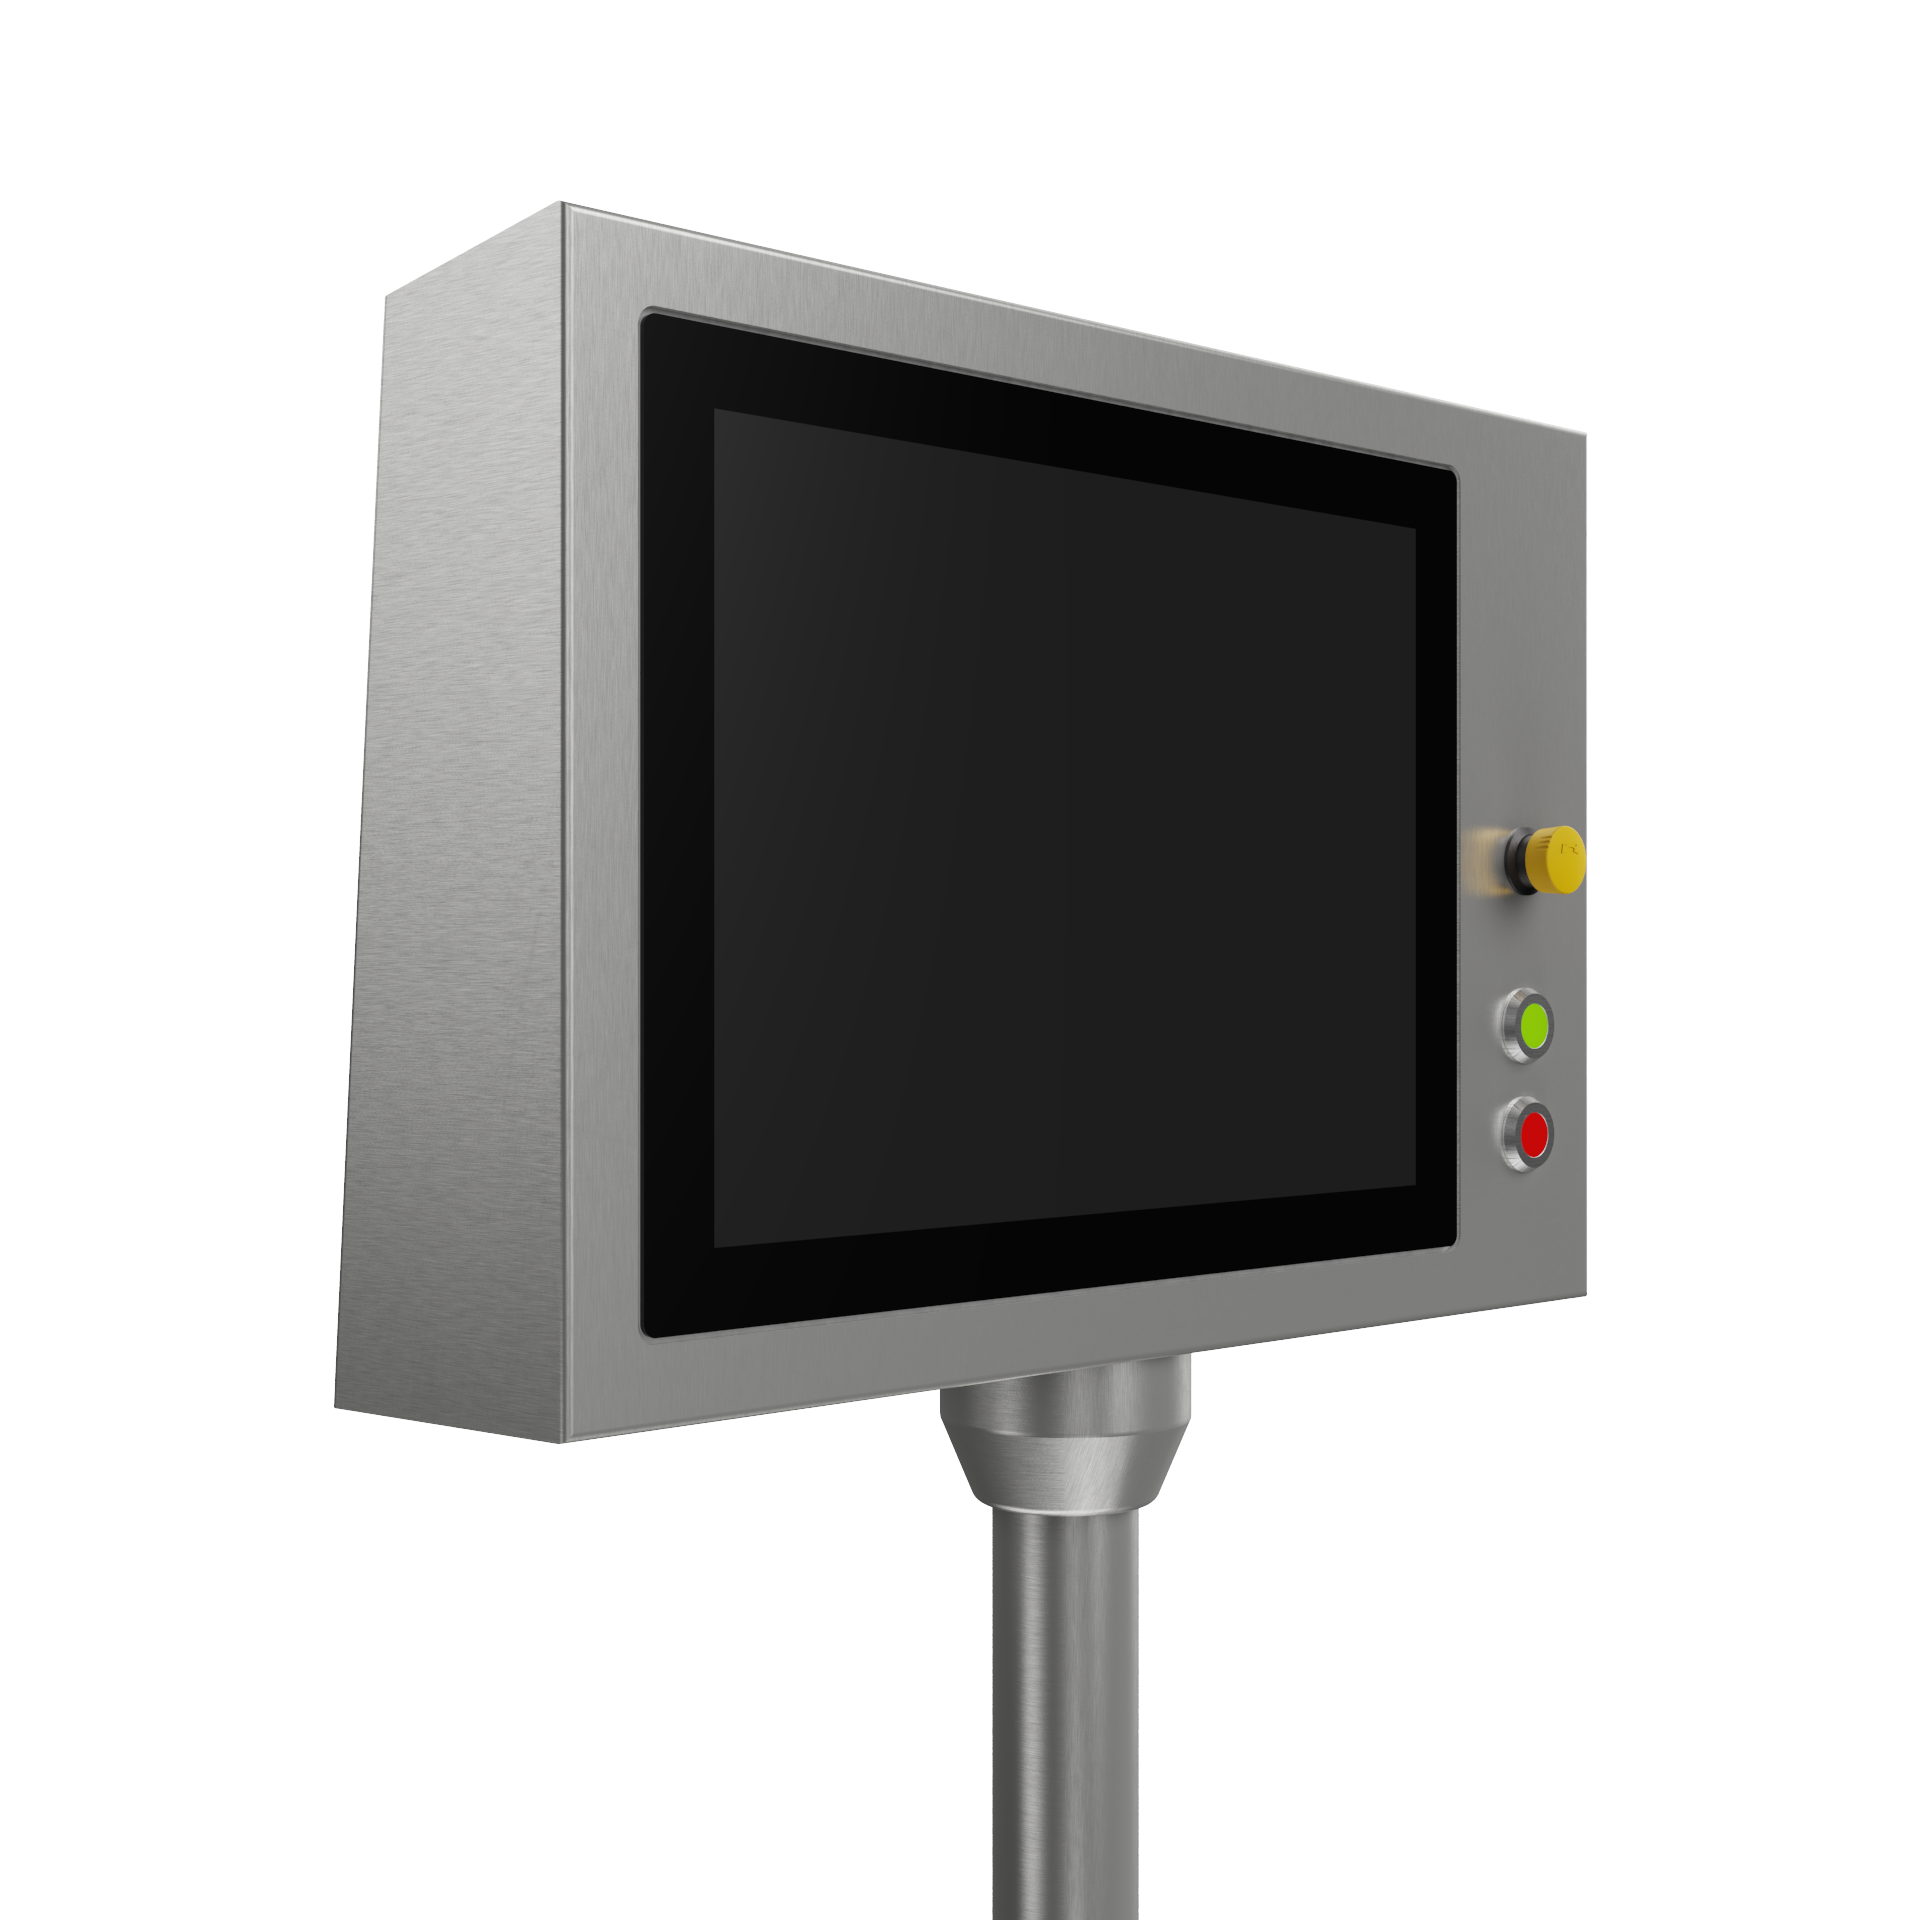 touch panel IP65 stainless steel